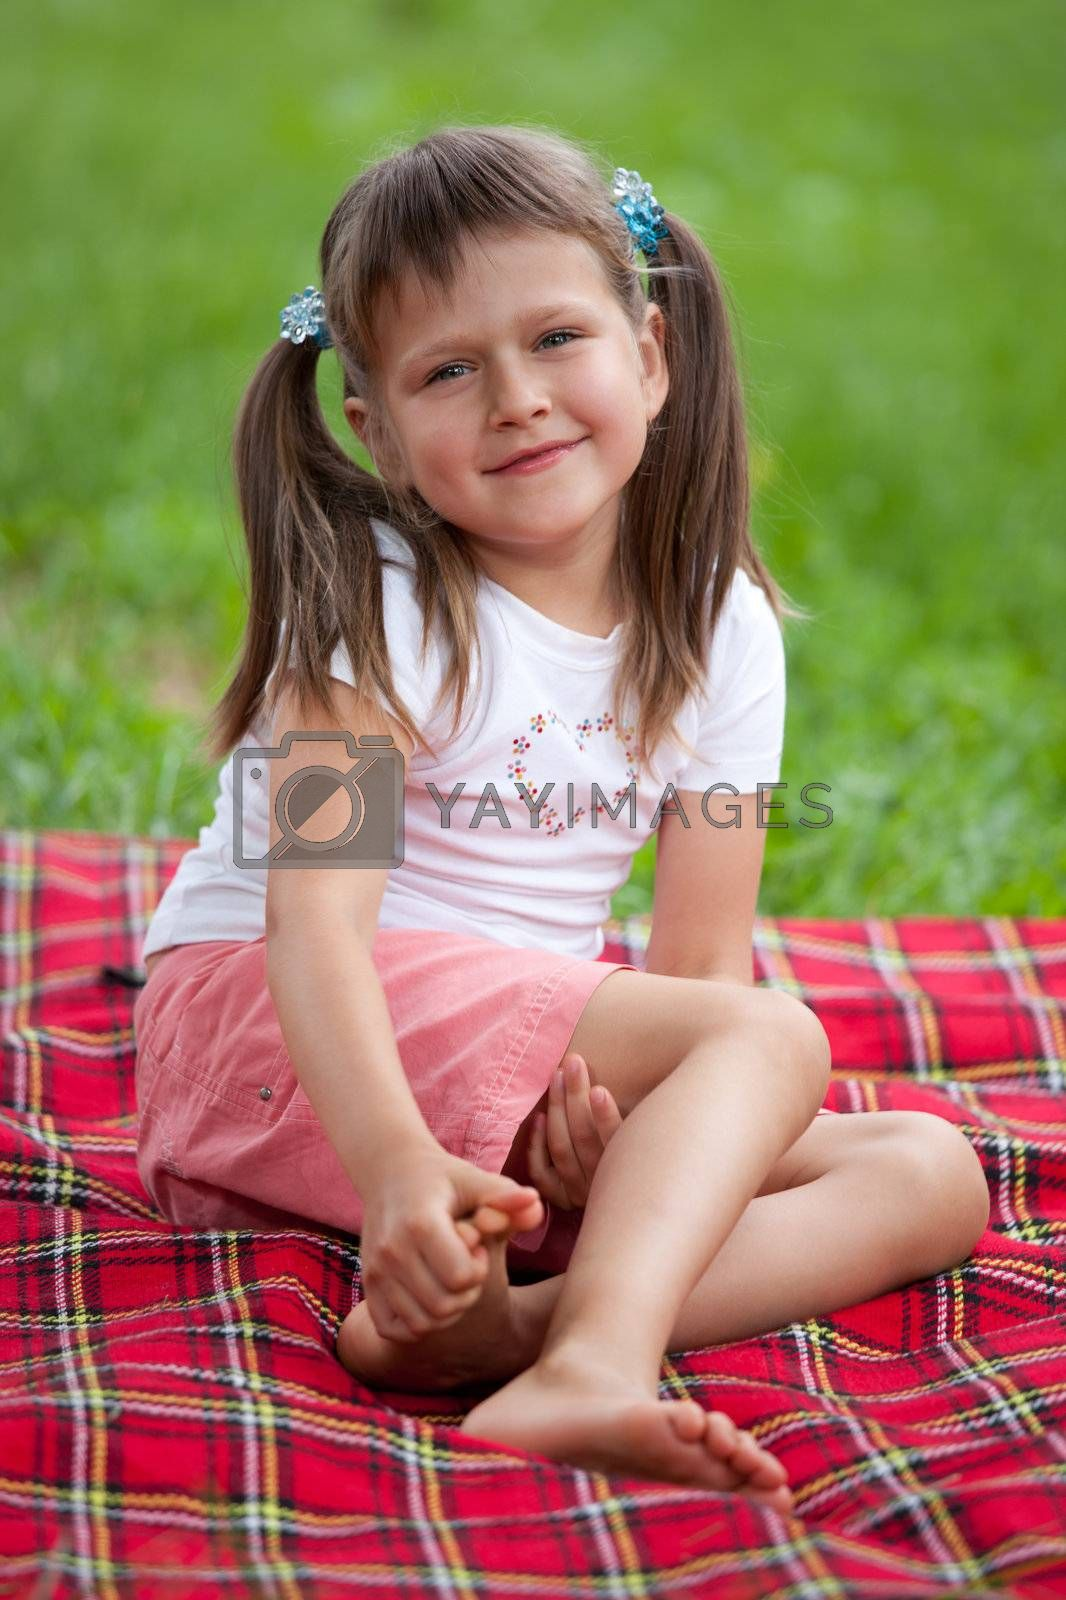 Little smiling cute blond girl preschooler with ponytails sitting on the red plaid on green grass in summer